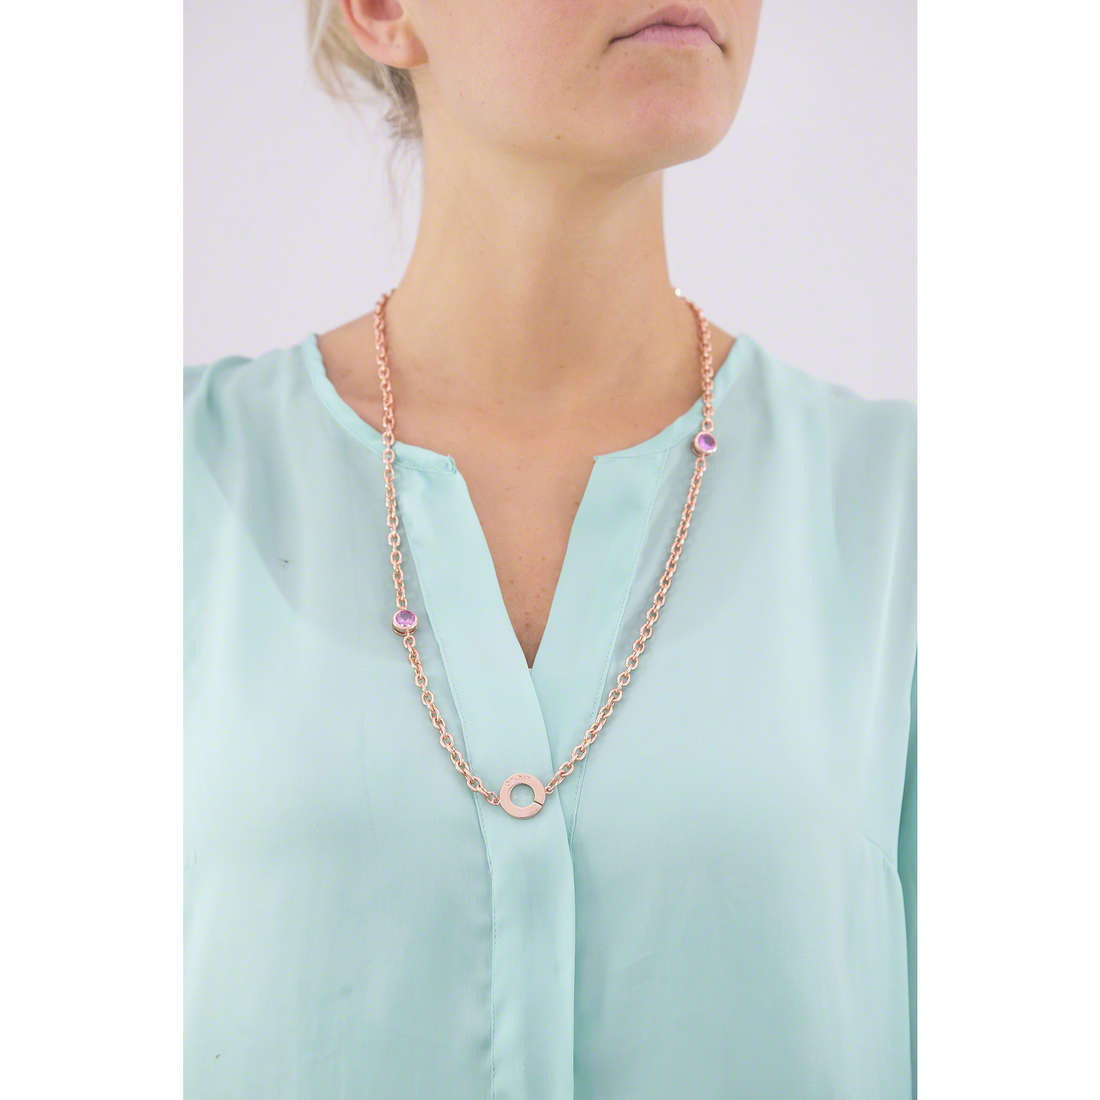 Liujo necklaces Illumina woman LJ967 indosso